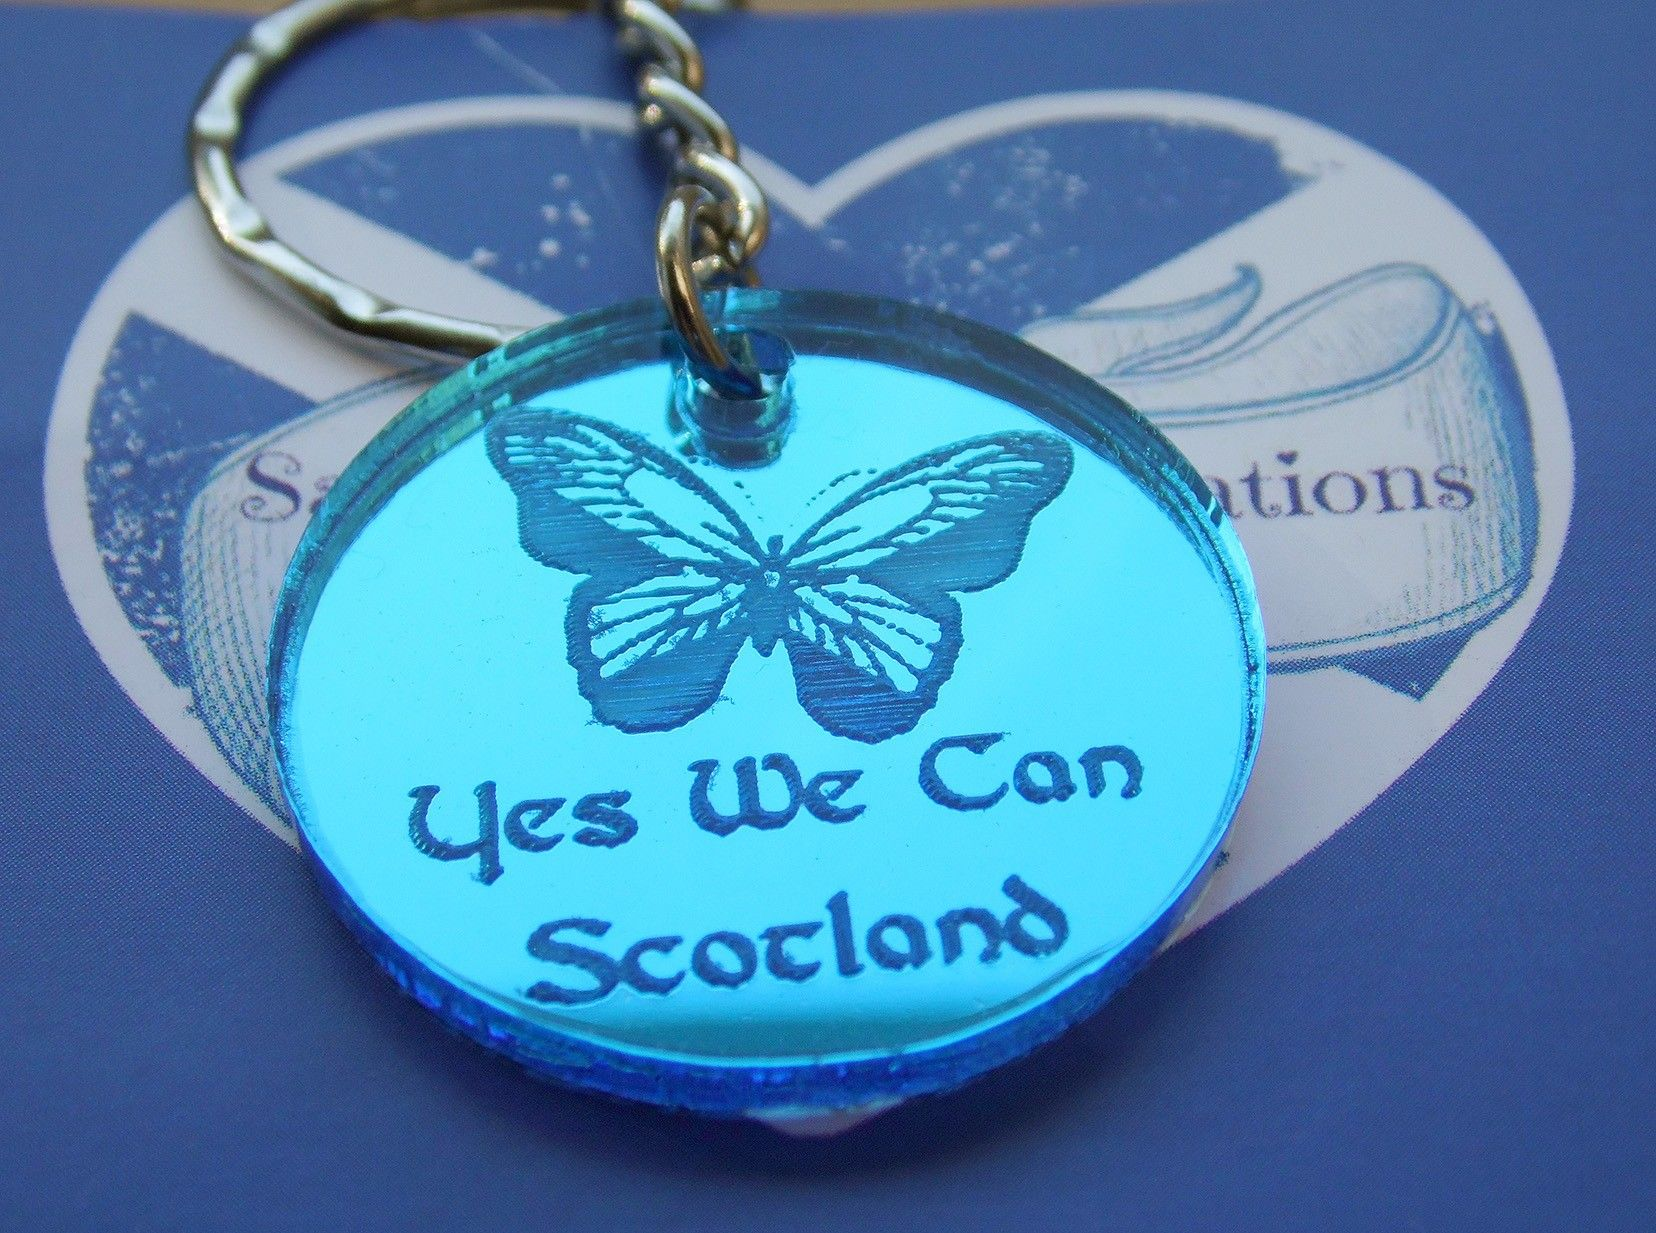 Yes We Can Scotland keyring blue